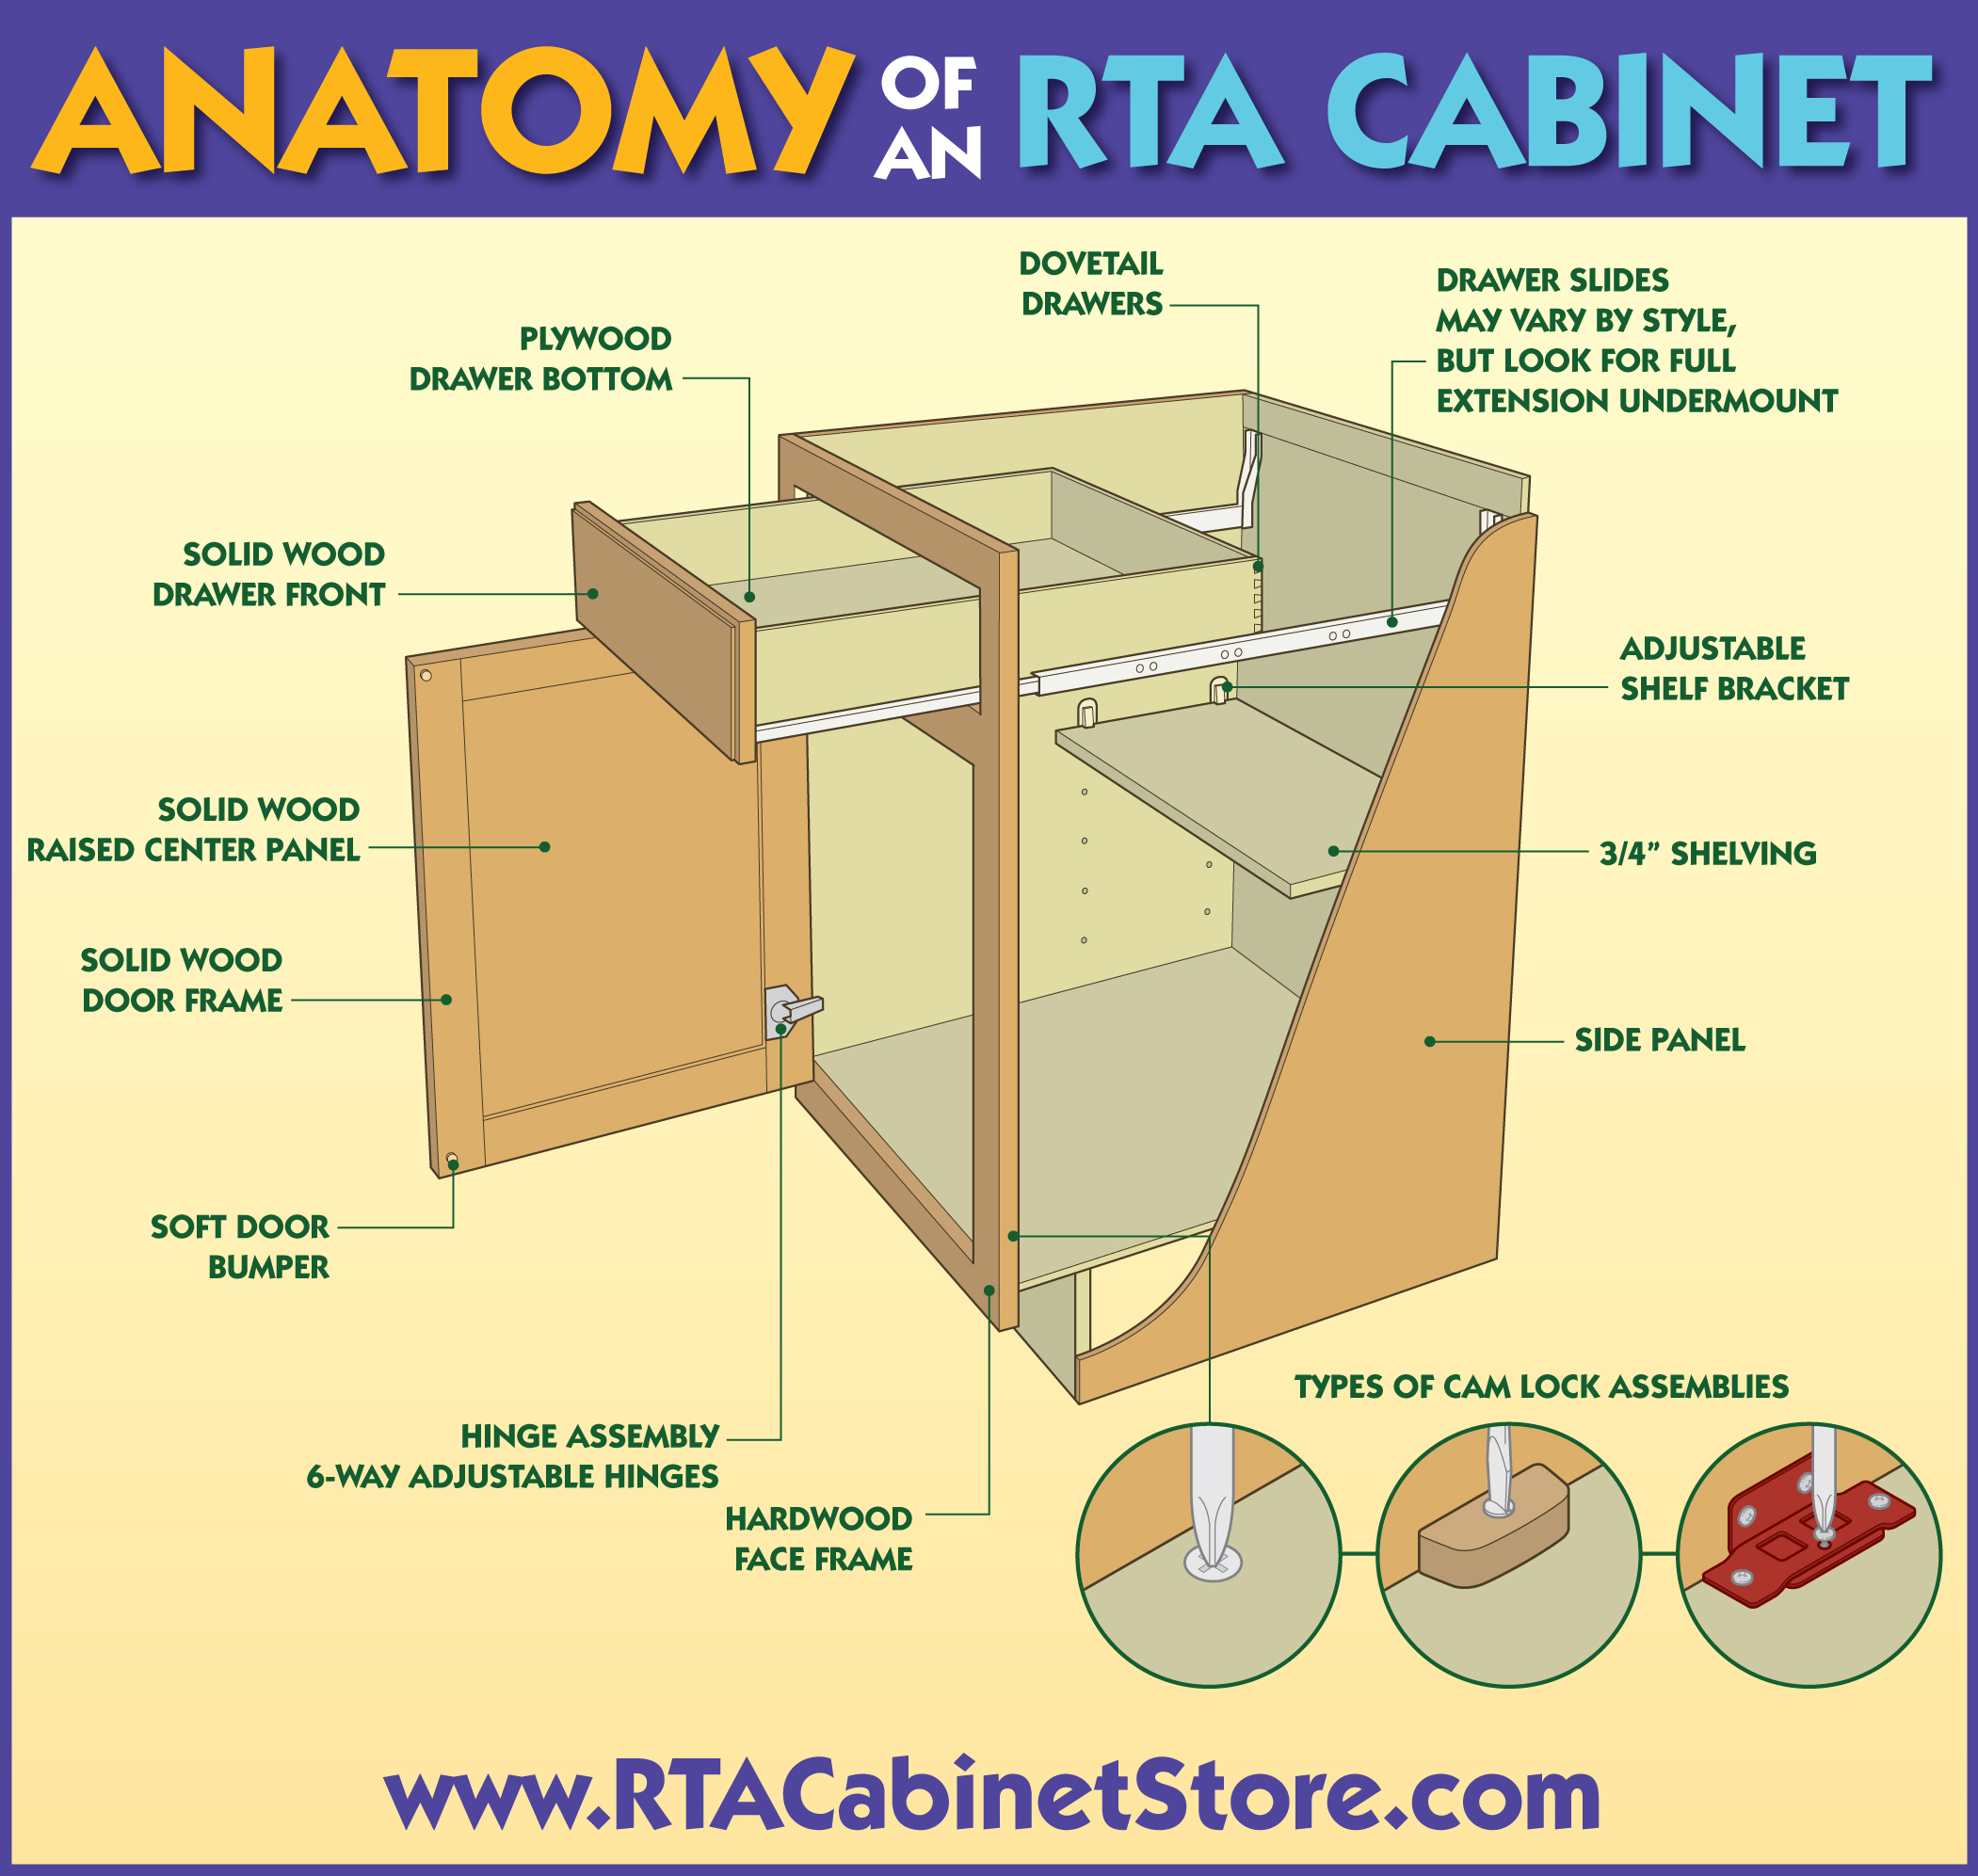 anatomy of an rta cabinet rta kitchen cabinets Anatomy of an RTA Cabinet